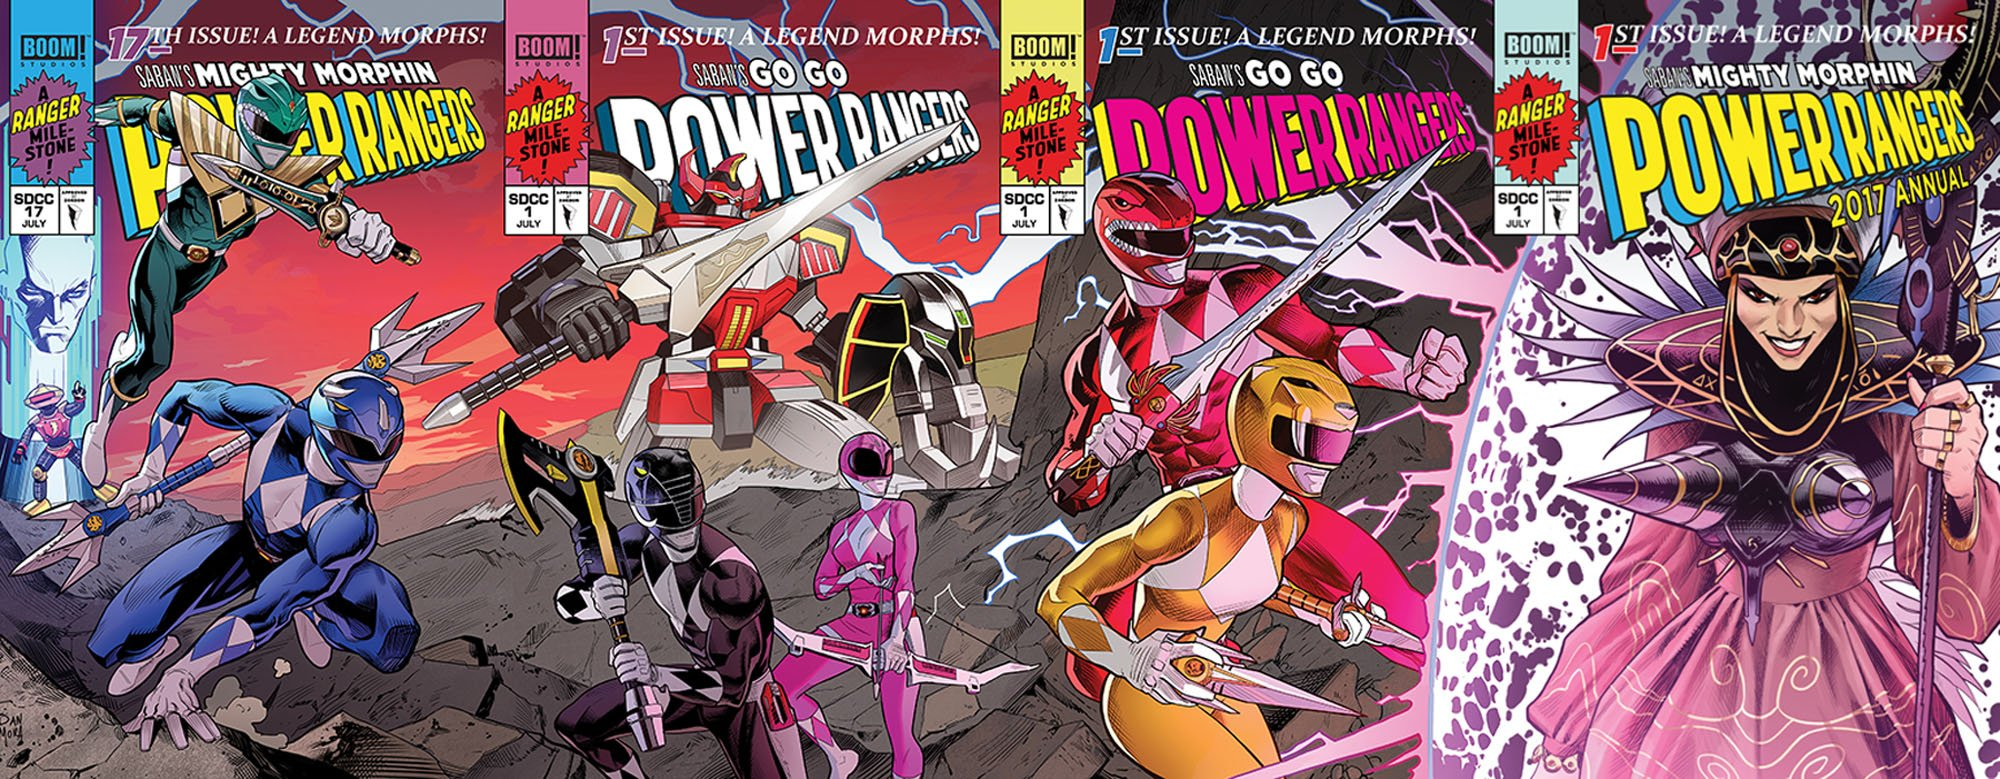 Power Rangers Jim Lee X-Men Cover Homage by Dan Mora